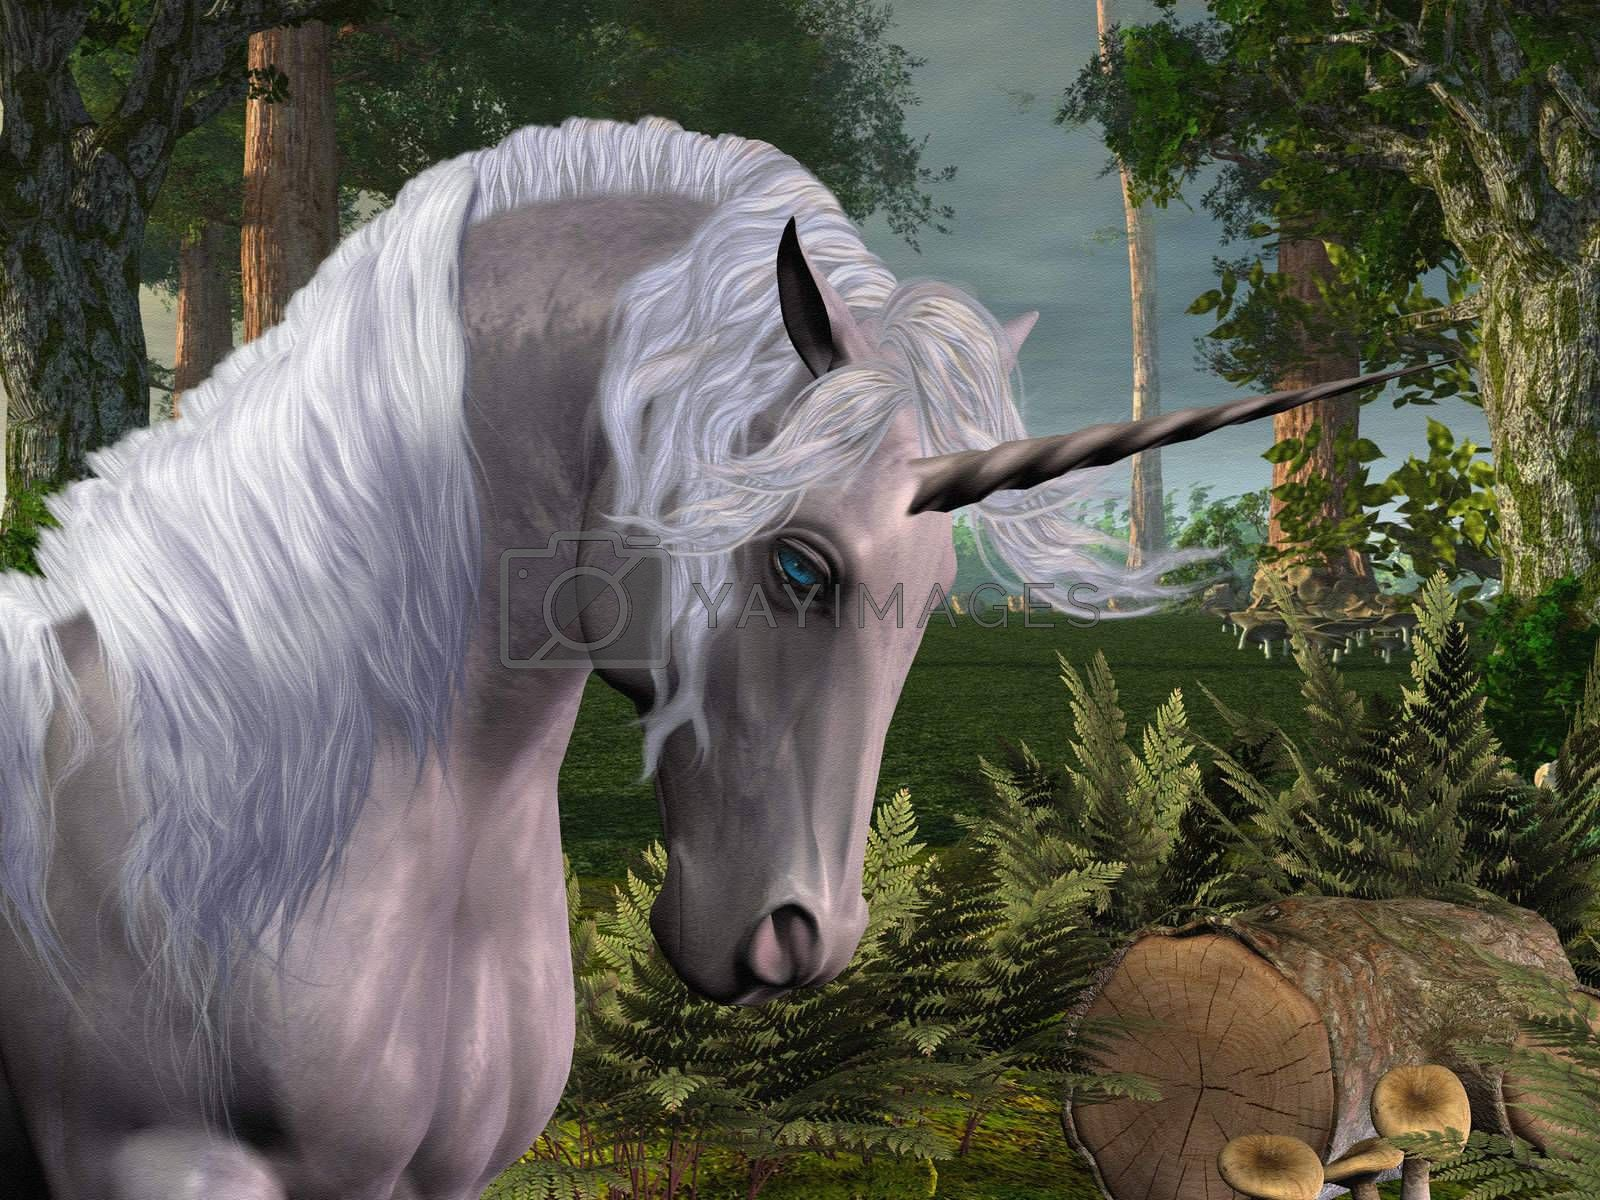 A beautiful stag unicorn passes through a magical forest.